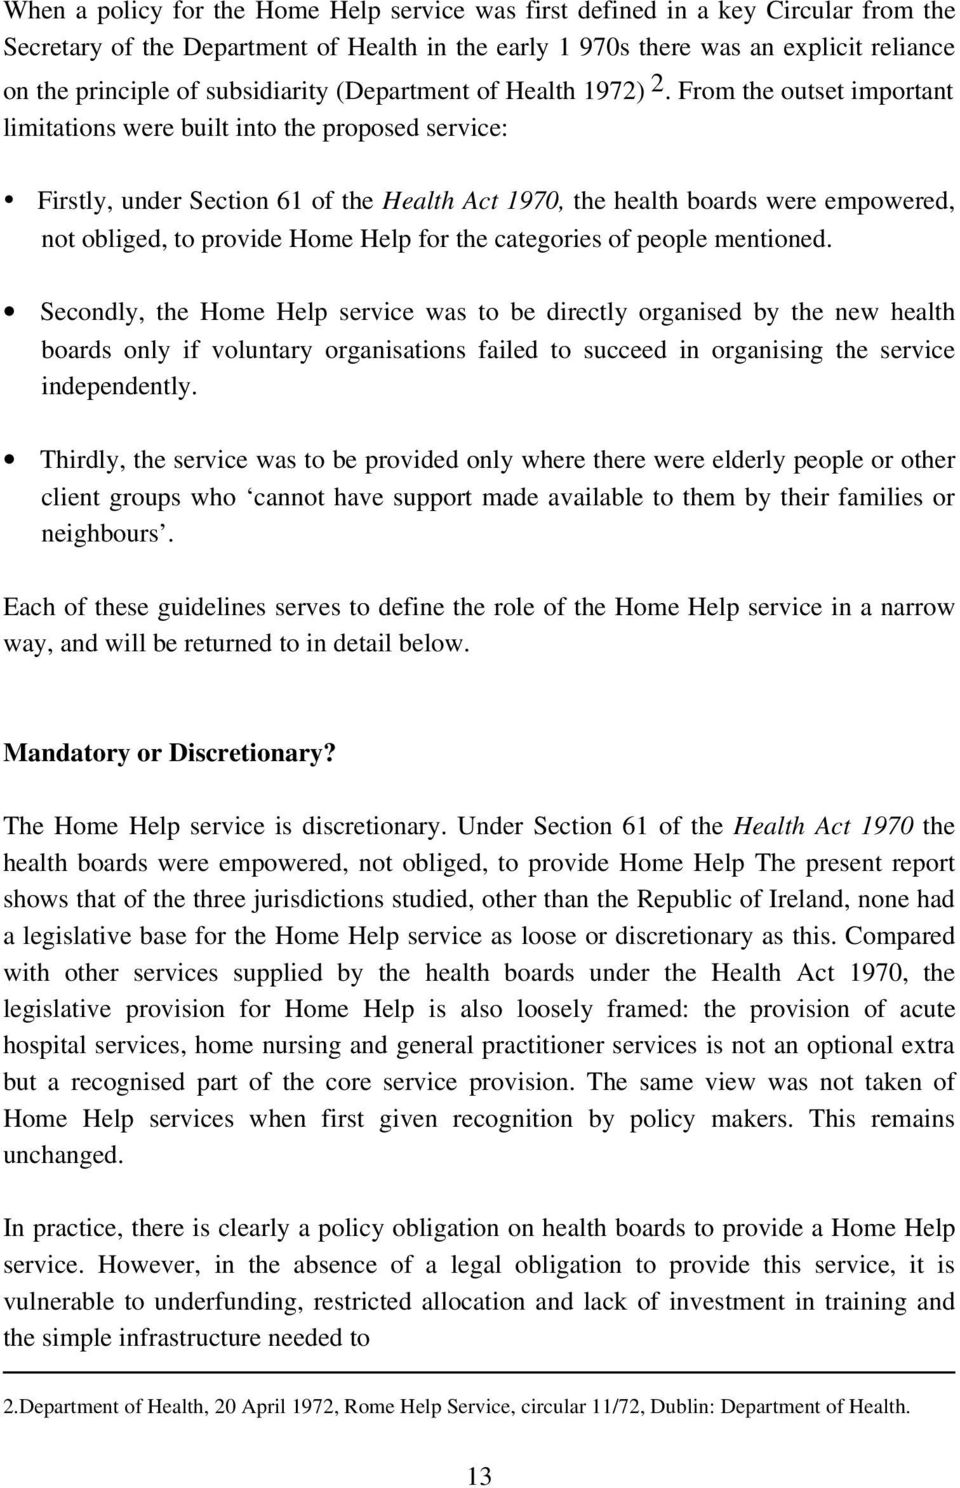 From the outset important limitations were built into the proposed service: Firstly, under Section 61 of the Health Act 1970, the health boards were empowered, not obliged, to provide Home Help for